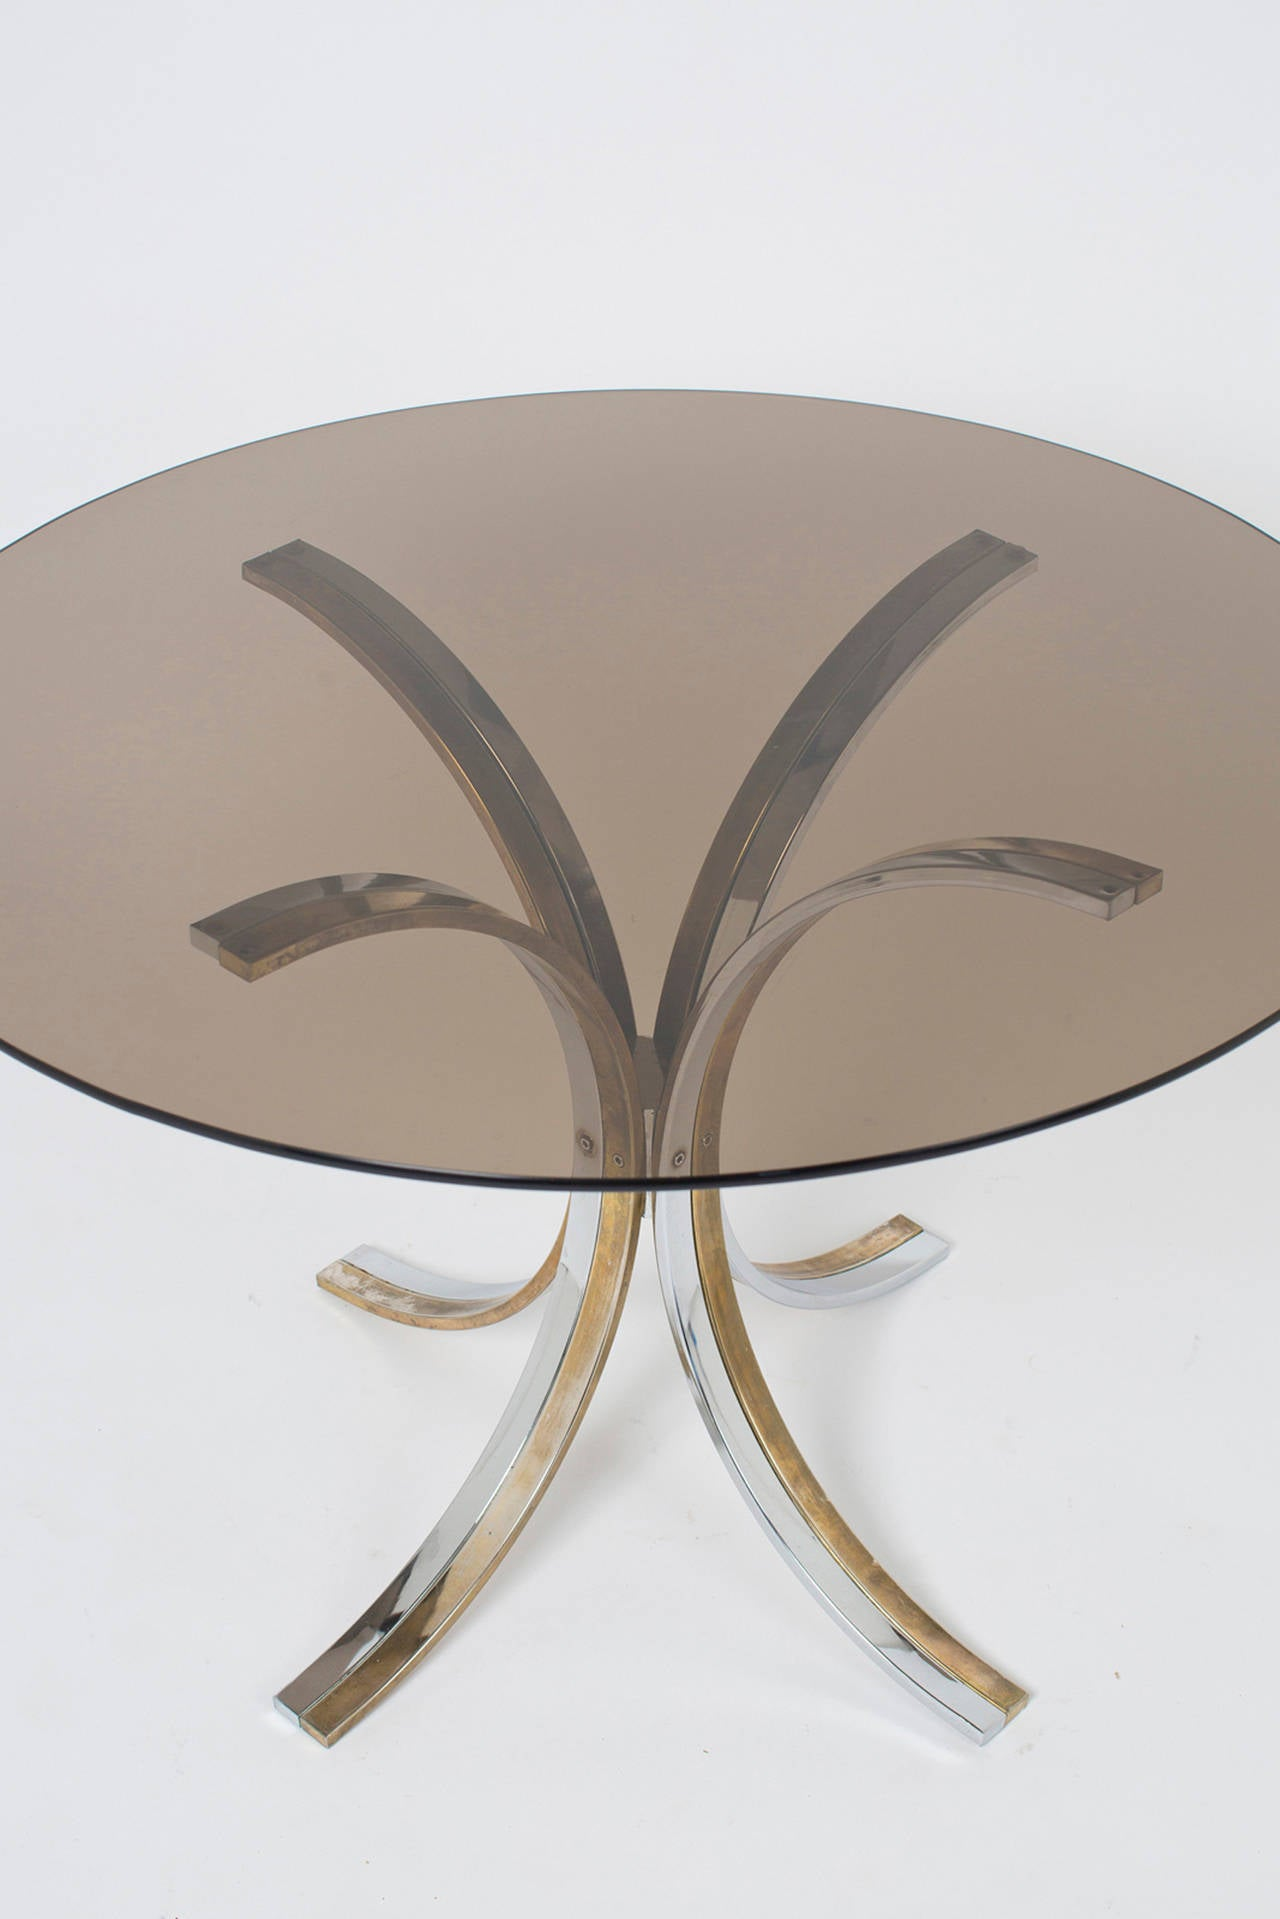 Vintage Romeo Rega Chrome Brass And Smoked Glass Table At 1stdibs